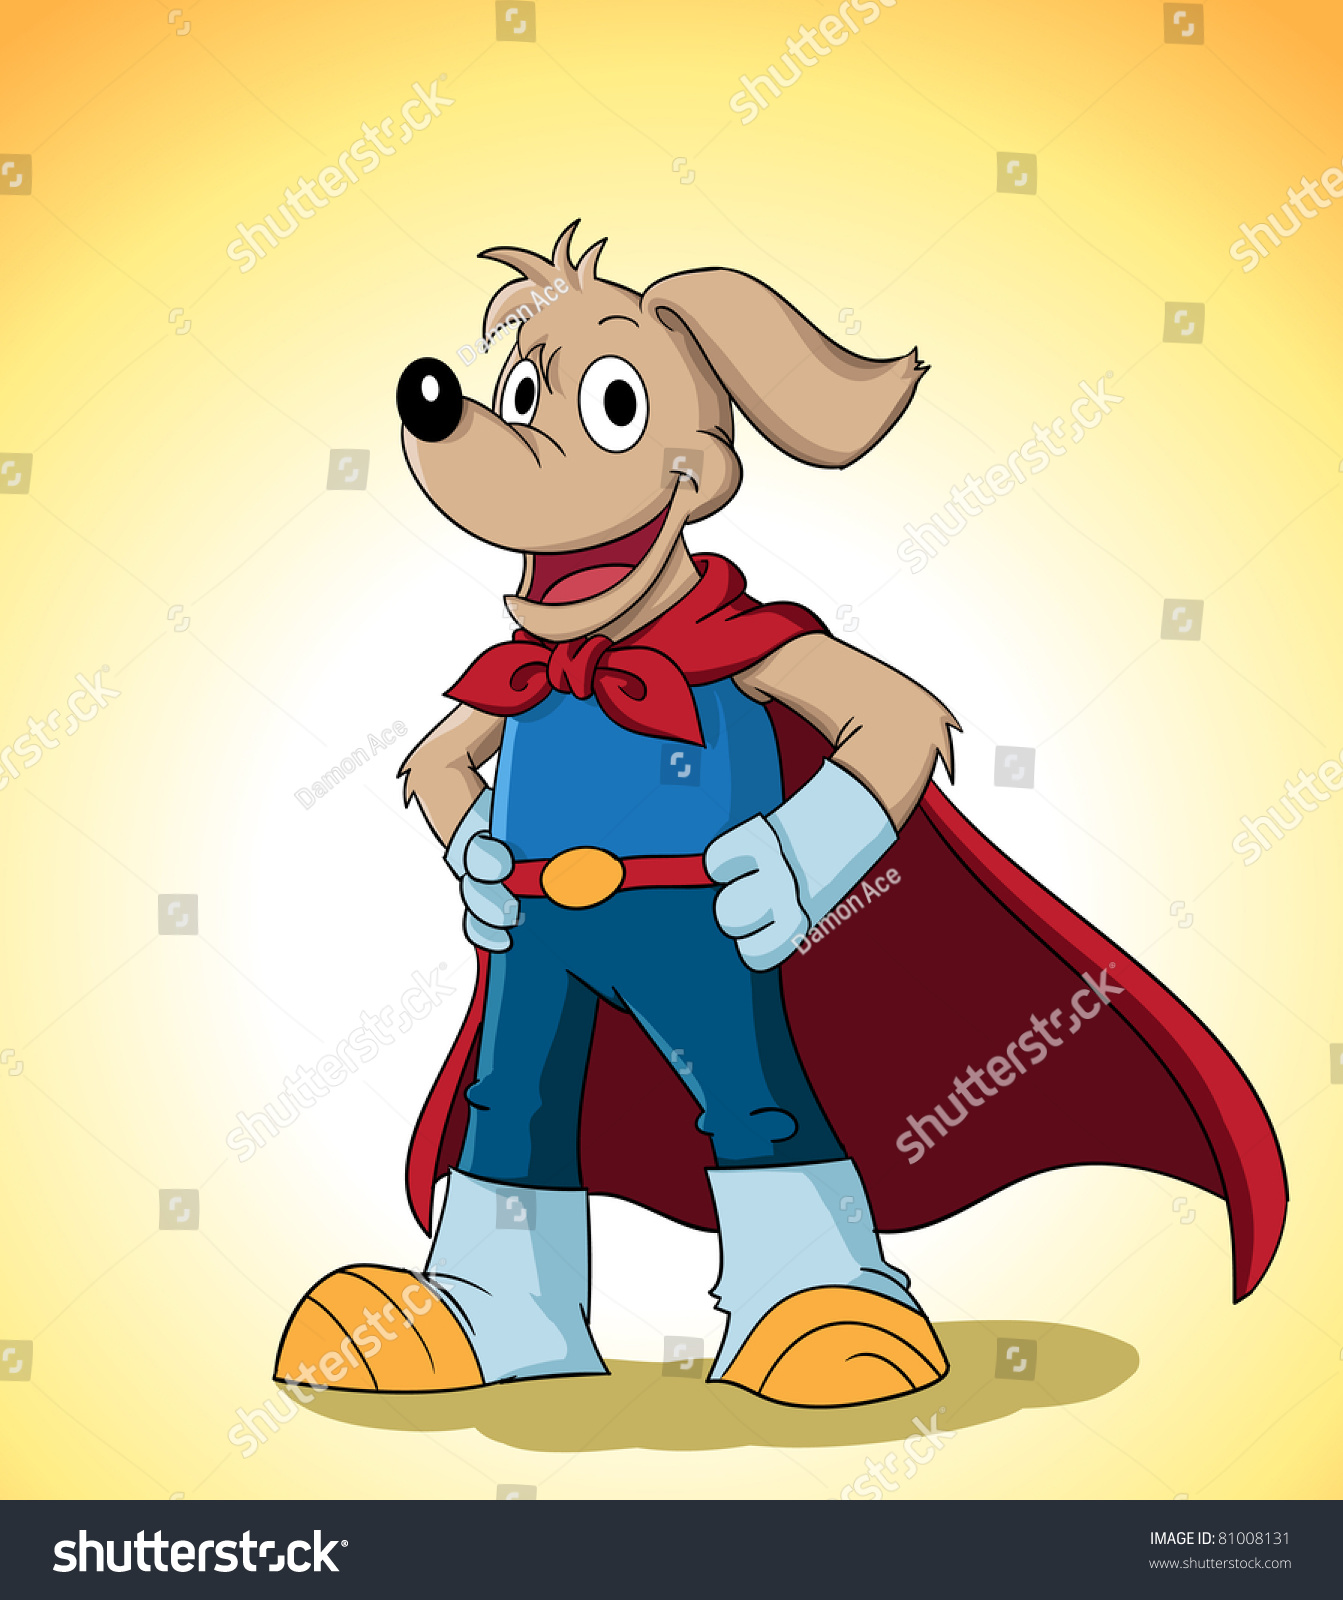 Image Of A Cute Dog In Superhero Costume. Suitable For Product Mascot Or Just Web Usage. See My Portfolio For Other Cute Animal Character Stock ...